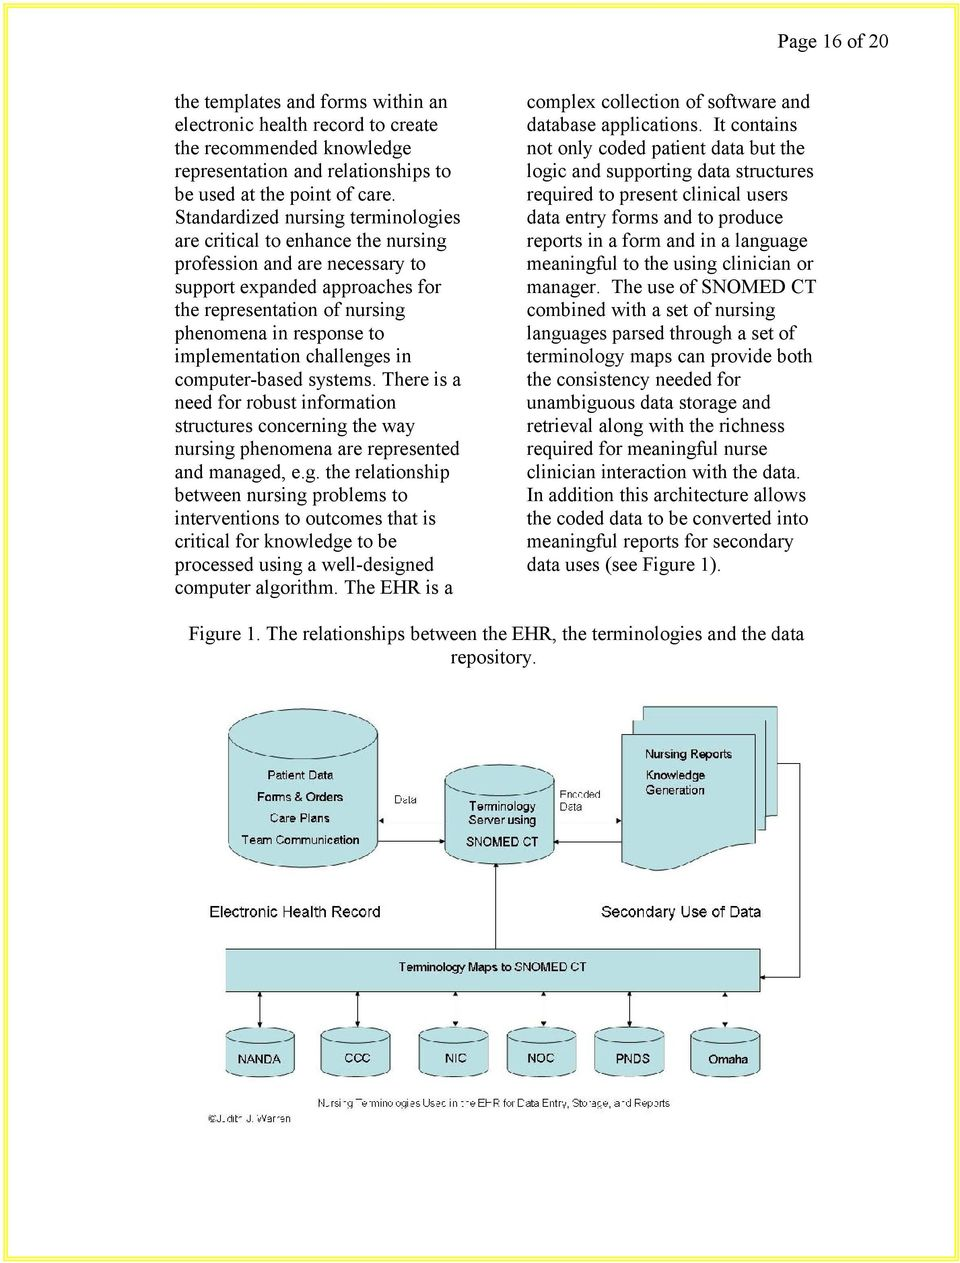 implementation challenges in computer-based systems. There is a need for robust information structures concerning the way nursing phenomena are represented and managed, e.g. the relationship between nursing problems to interventions to outcomes that is critical for knowledge to be processed using a well-designed computer algorithm.